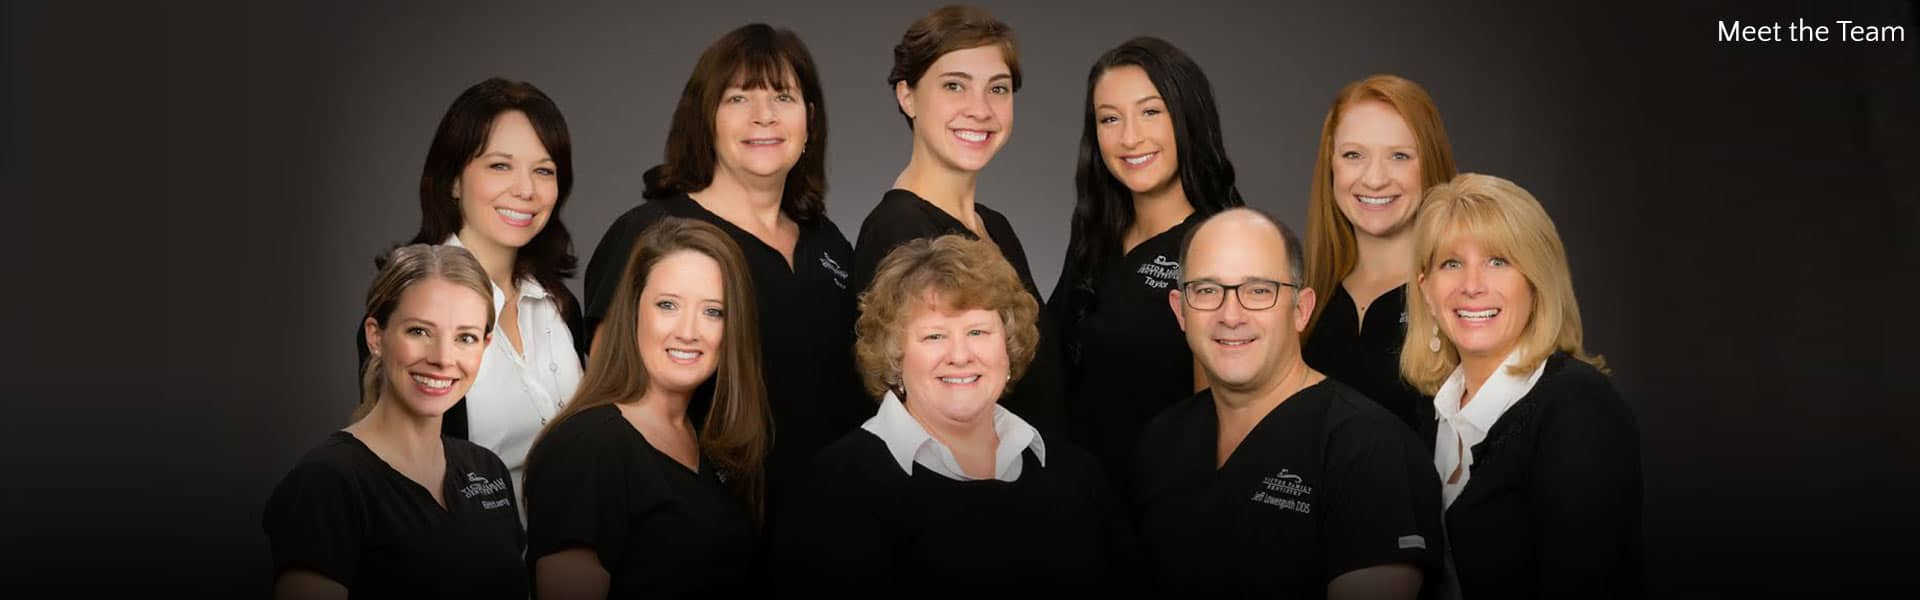 Meet the team Victor Family Dentistry Victor NY